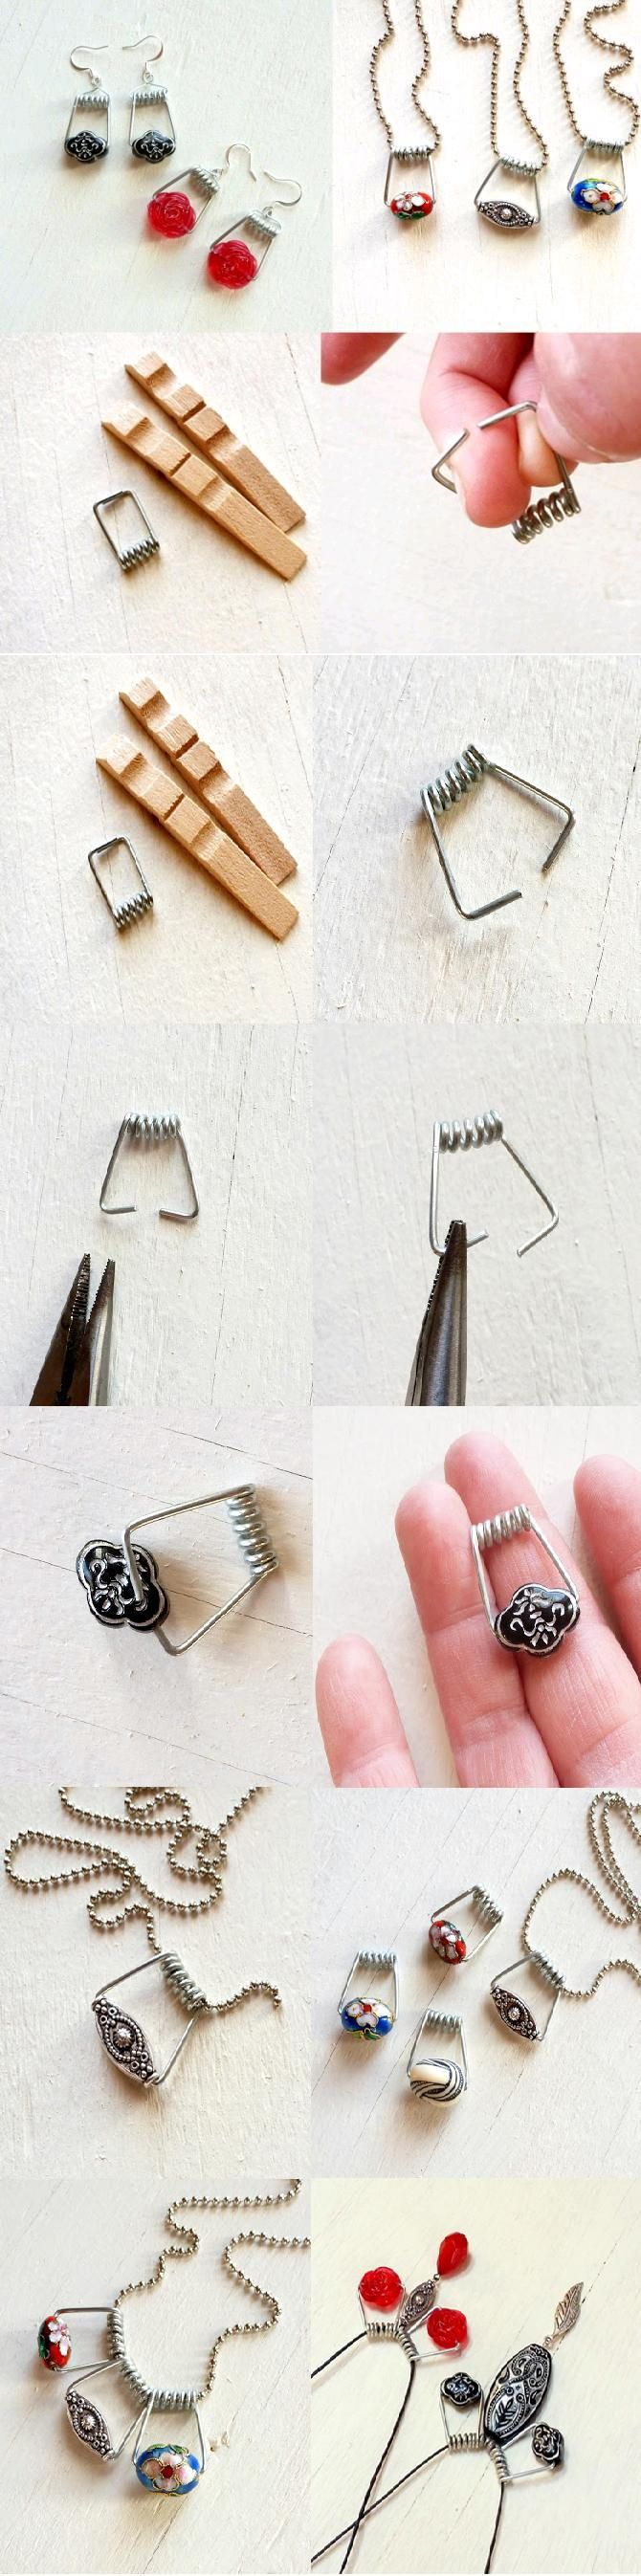 Cool use of old clothespin springs. DIY Clothespin Jewelry